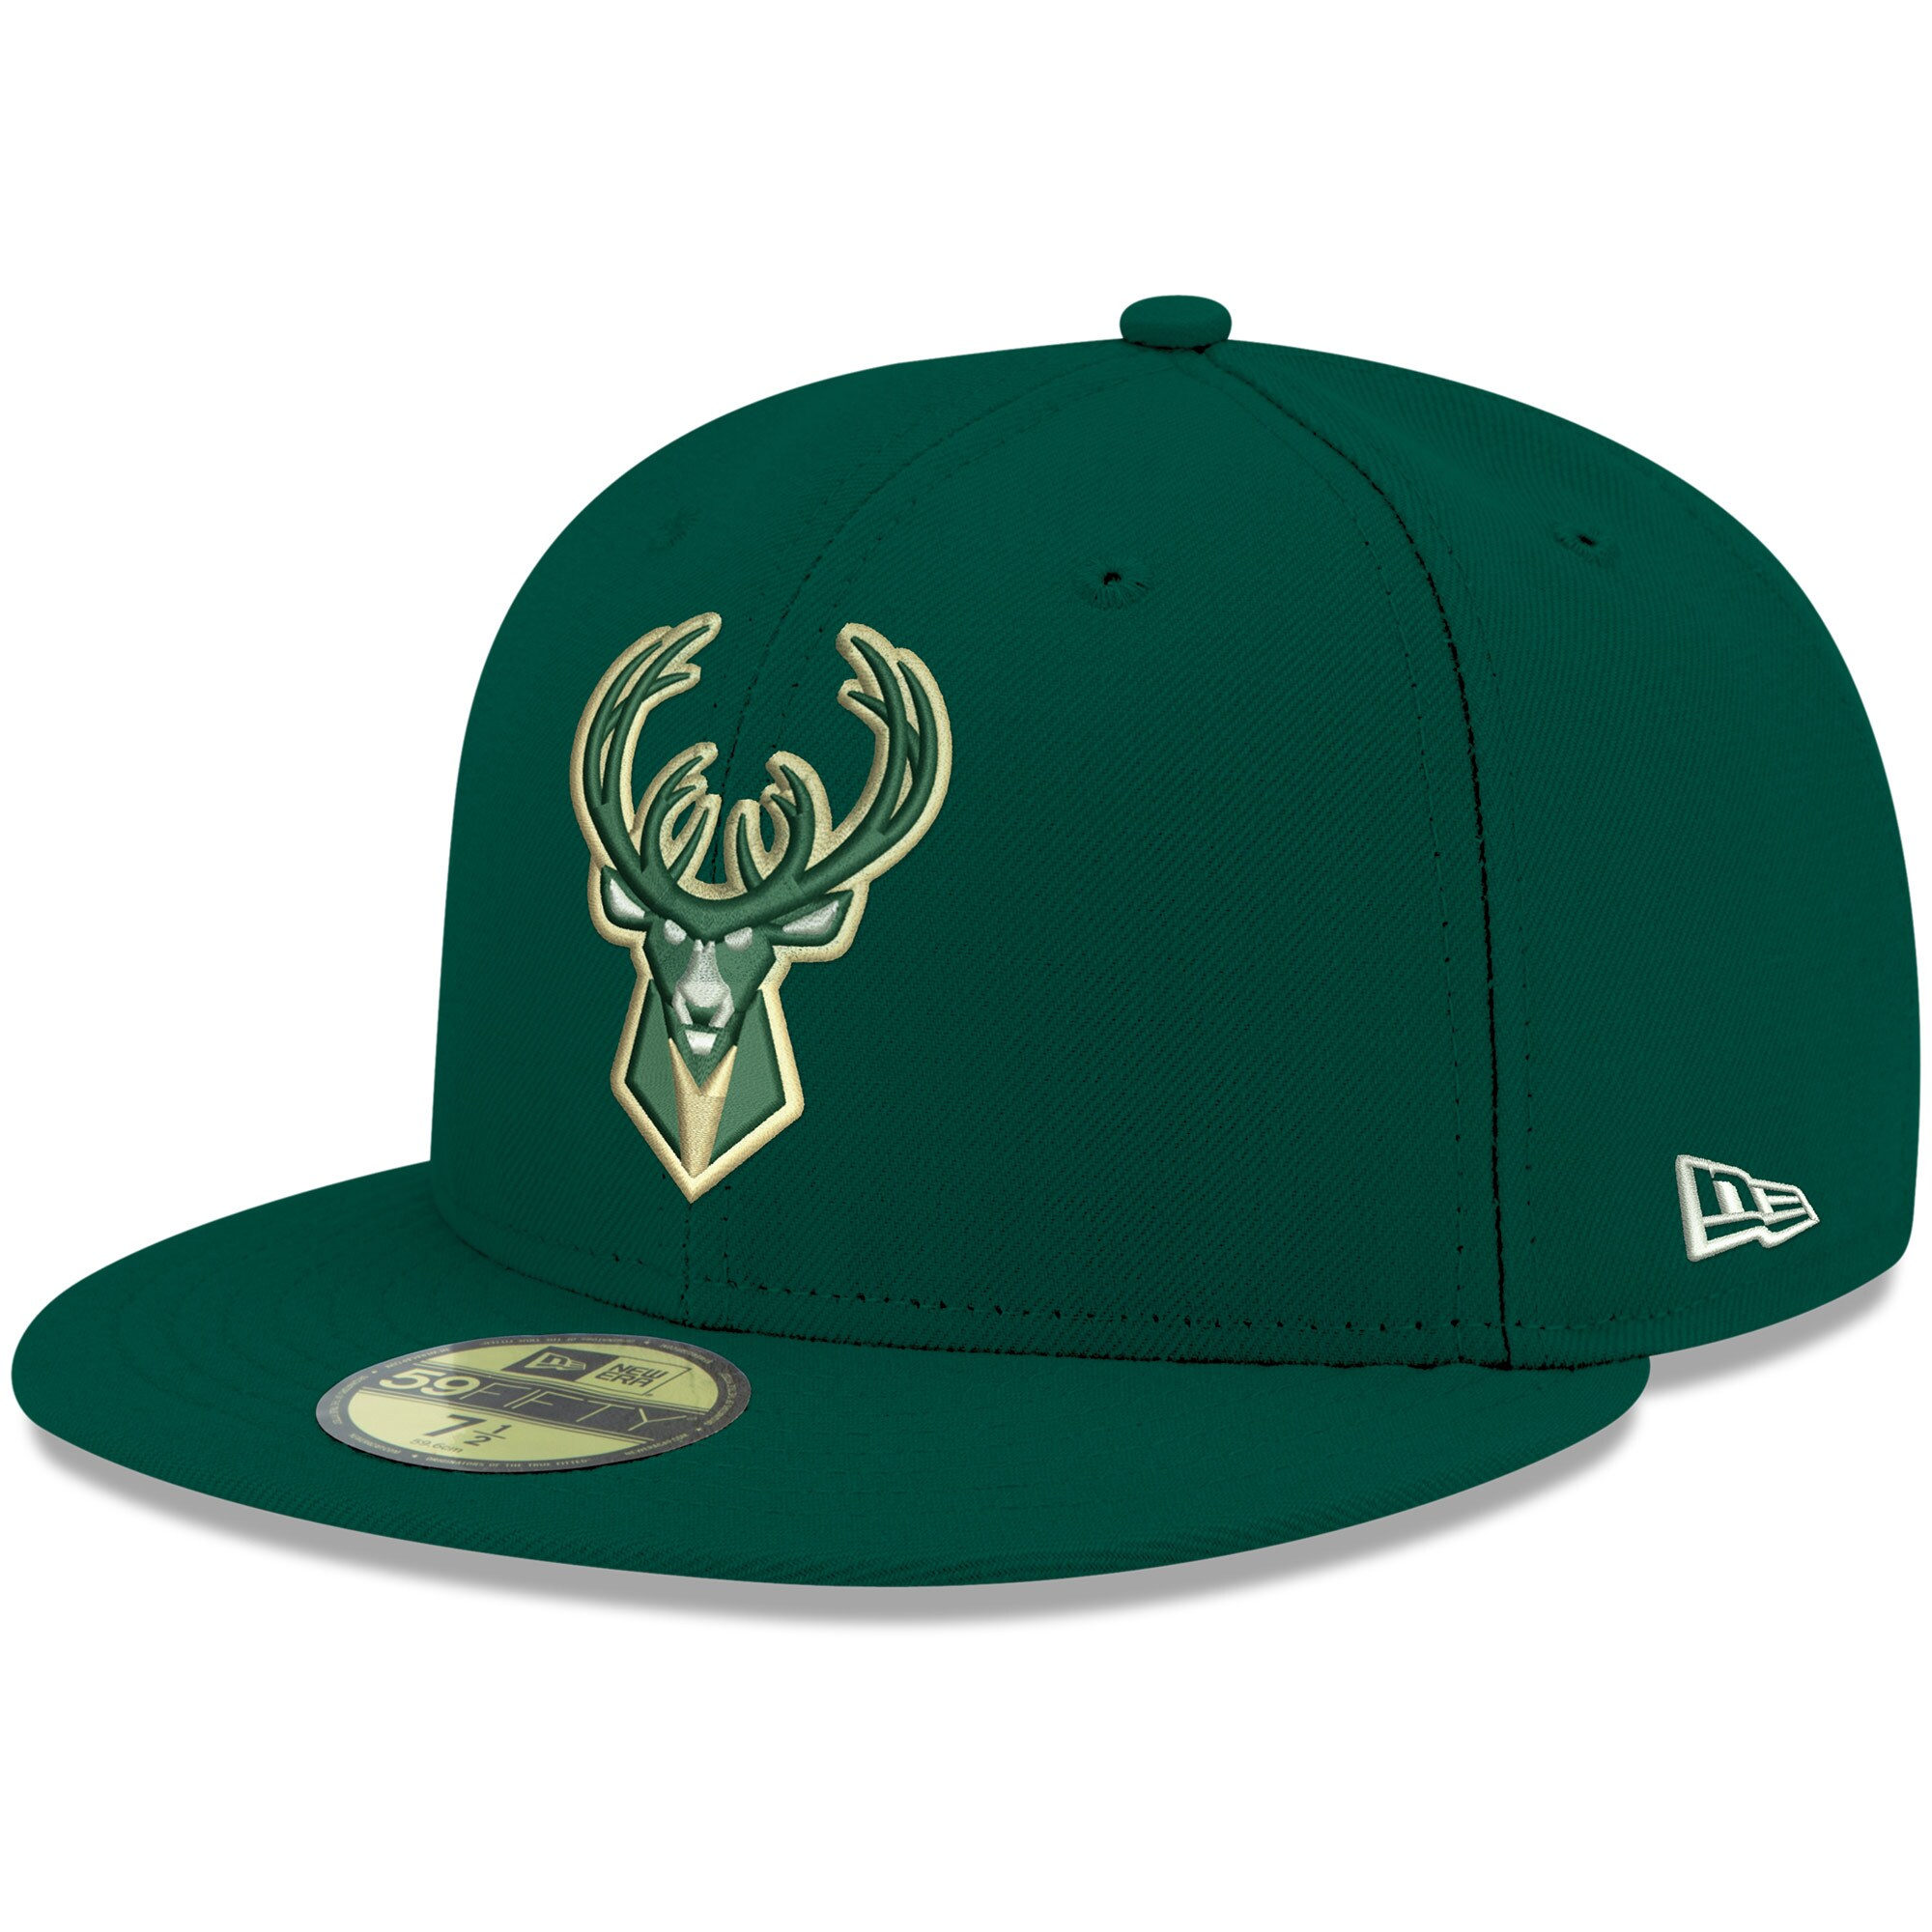 Milwaukee Bucks New Era Official Team Color 59FIFTY Fitted Hat - Green